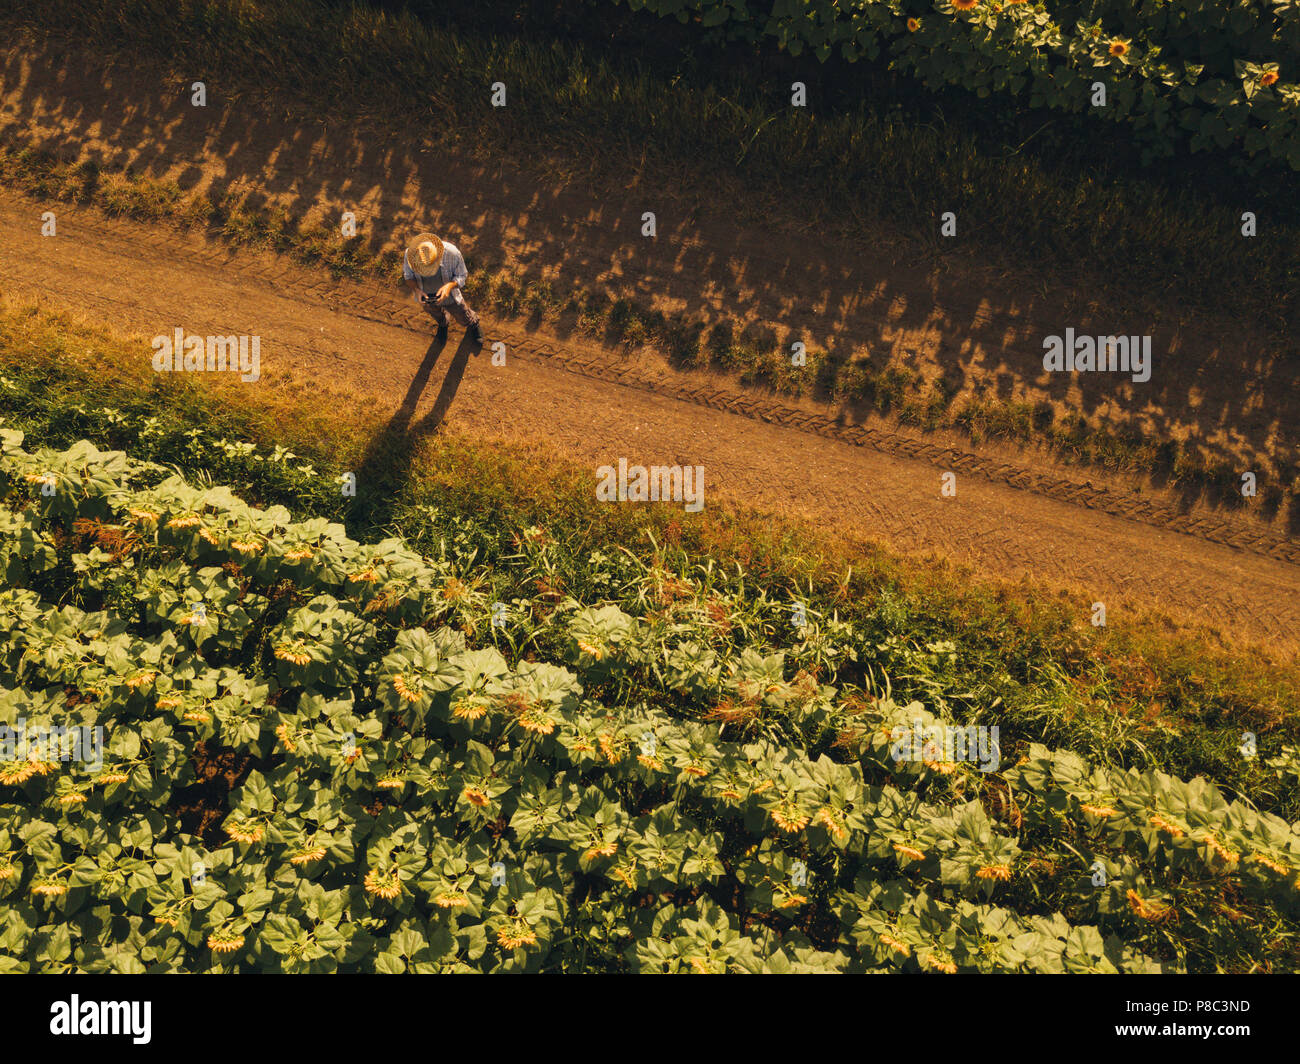 Farmer agronomist using drone to examine blooming of sunflower crops in field from above, using modern technology in agriculture and food production i Stock Photo